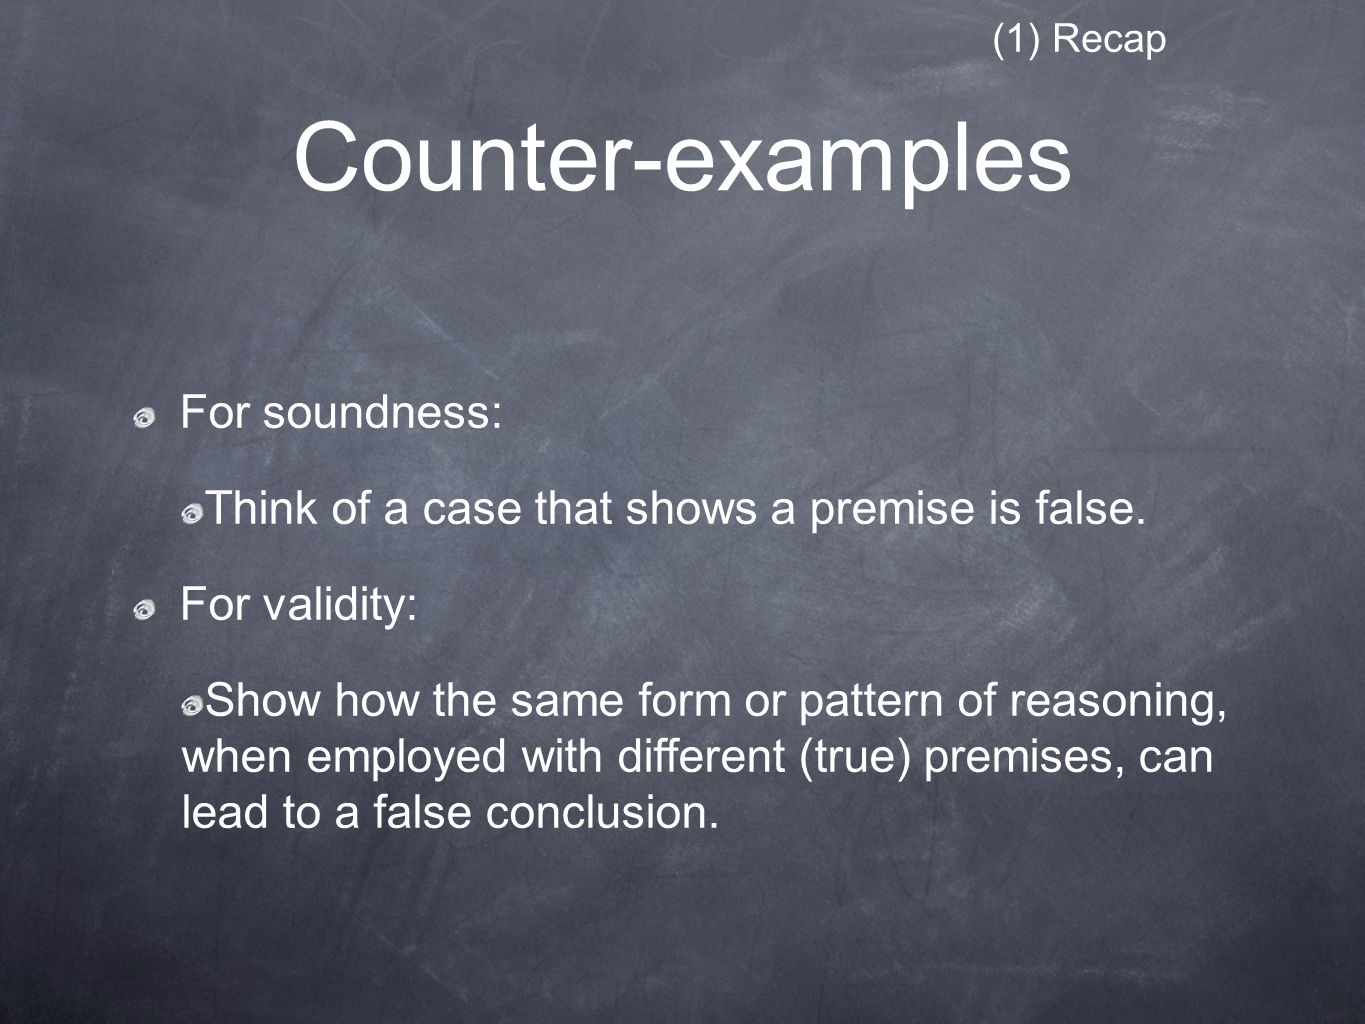 Counter-examples (1) Recap For soundness: Think of a case that shows a premise is false.